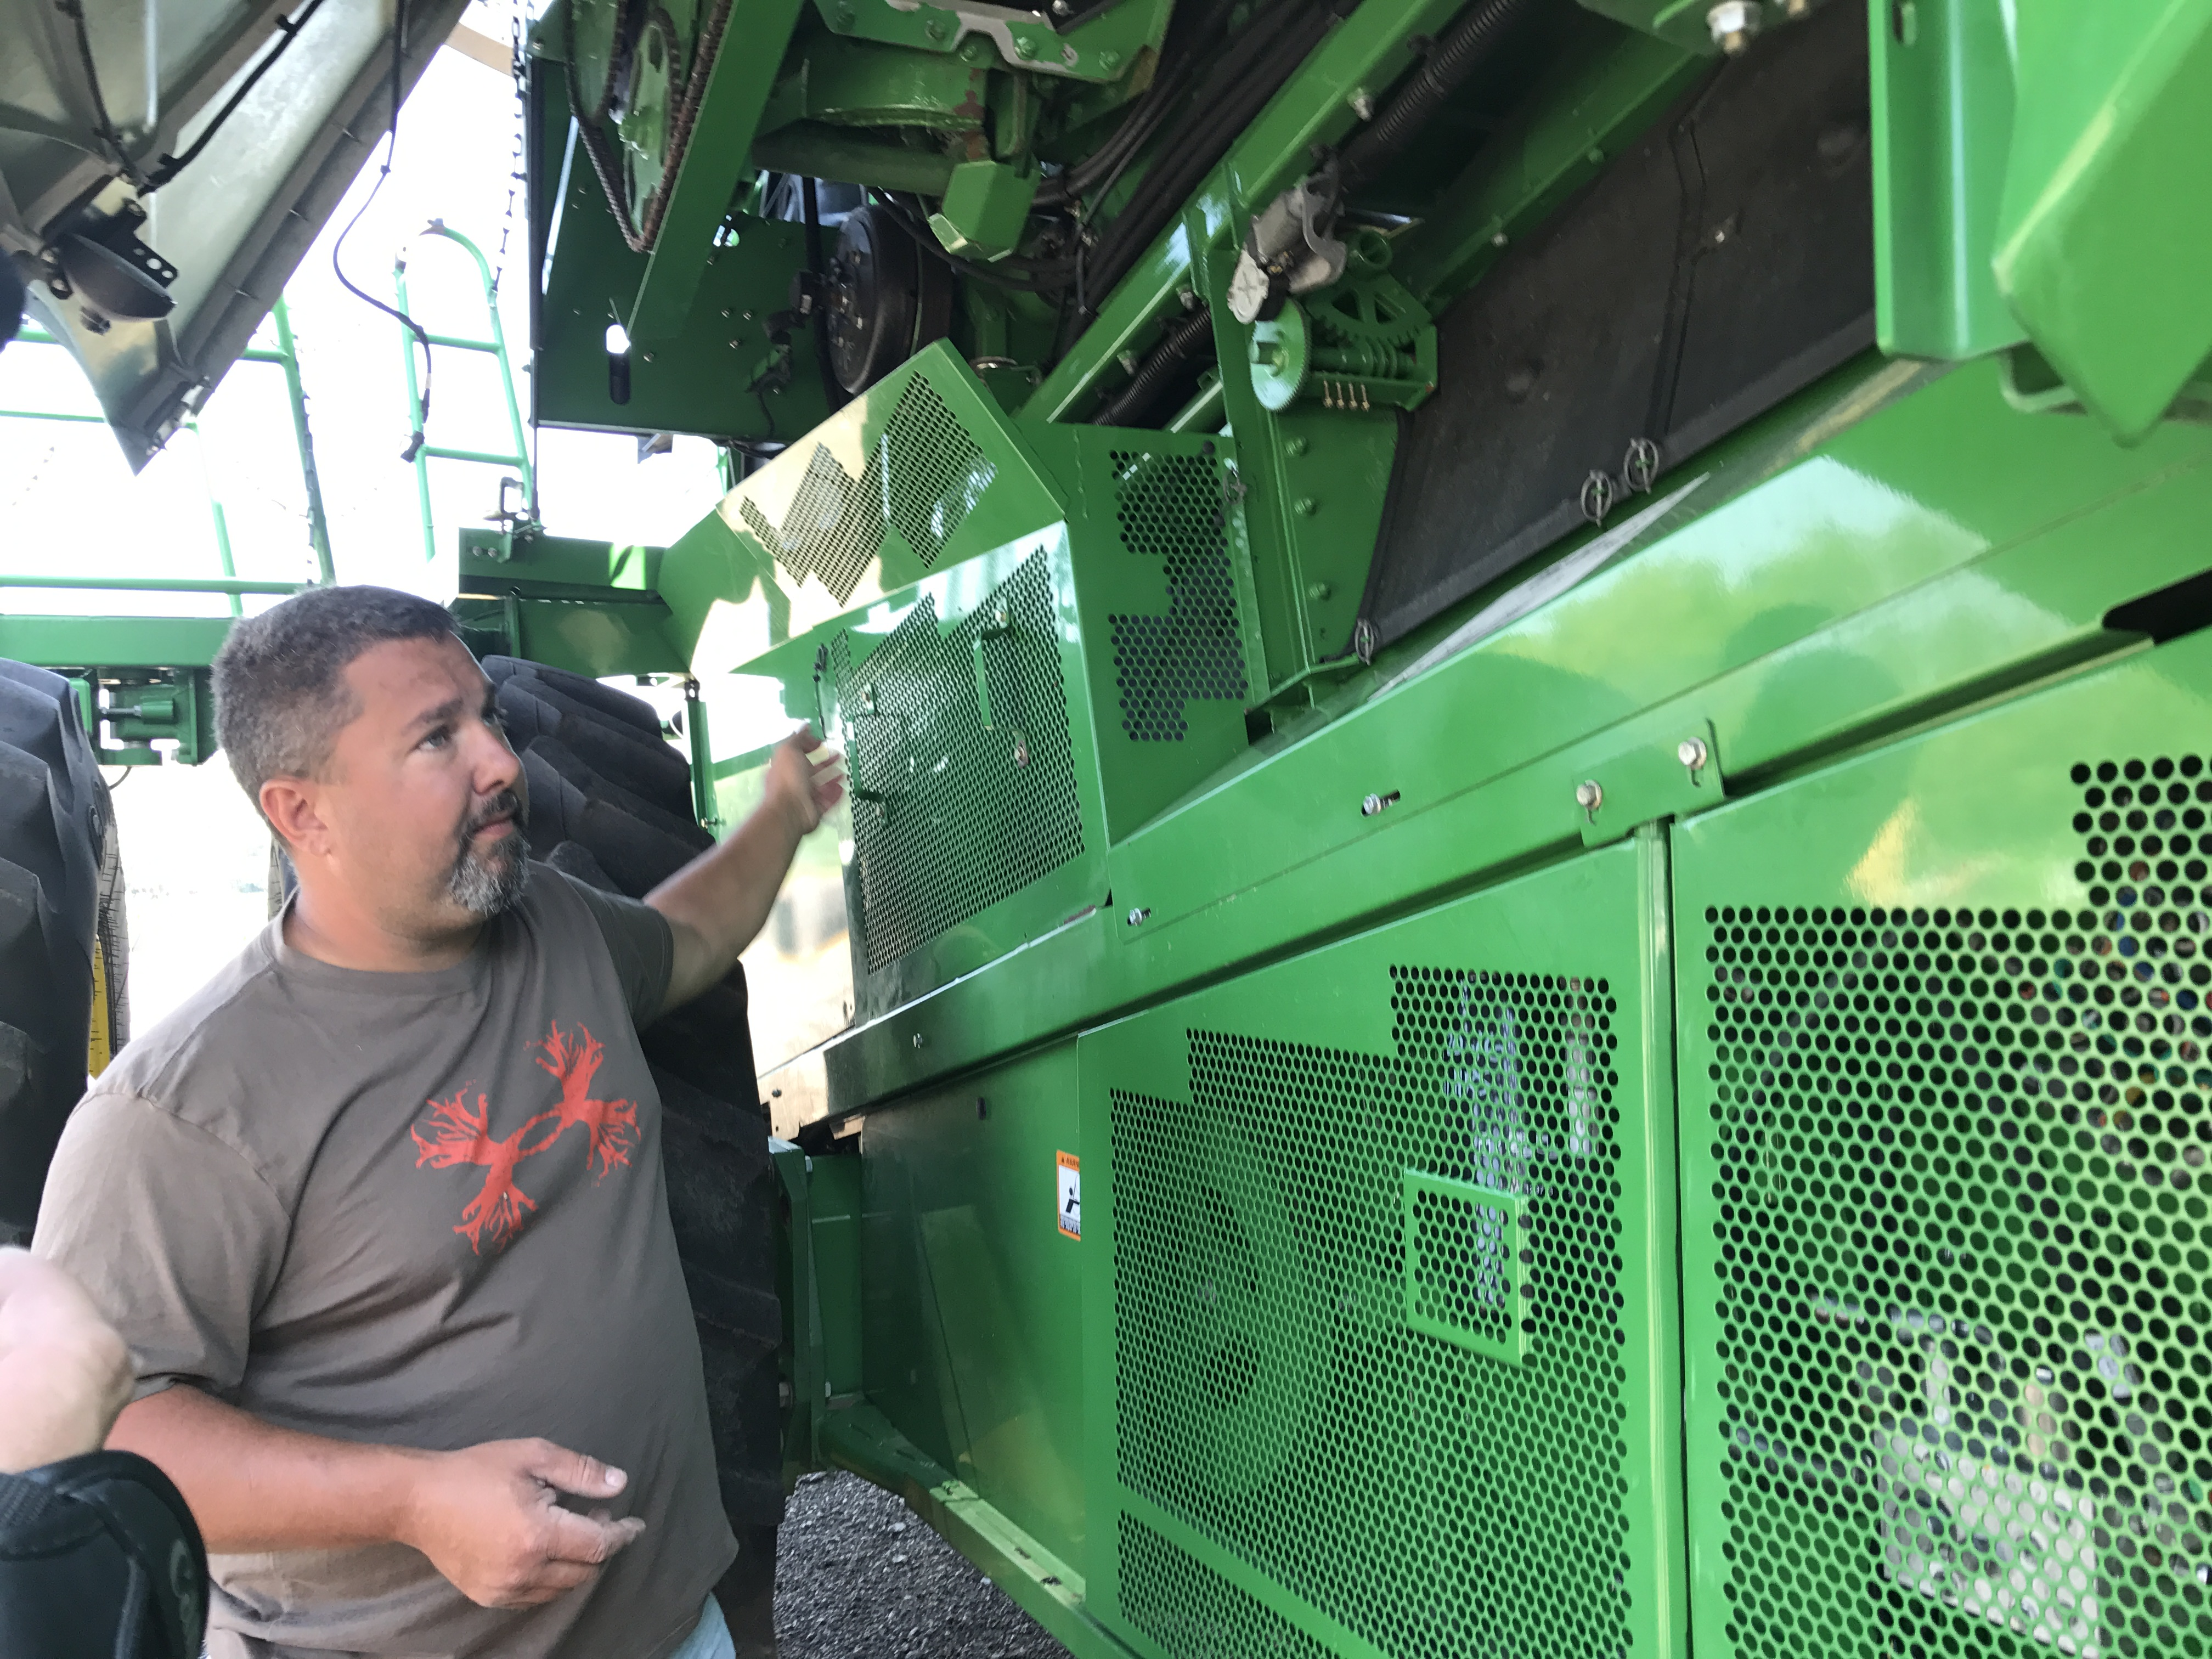 Tractor-Hacking Farmers Are Leading a Revolt Against Big Tech's